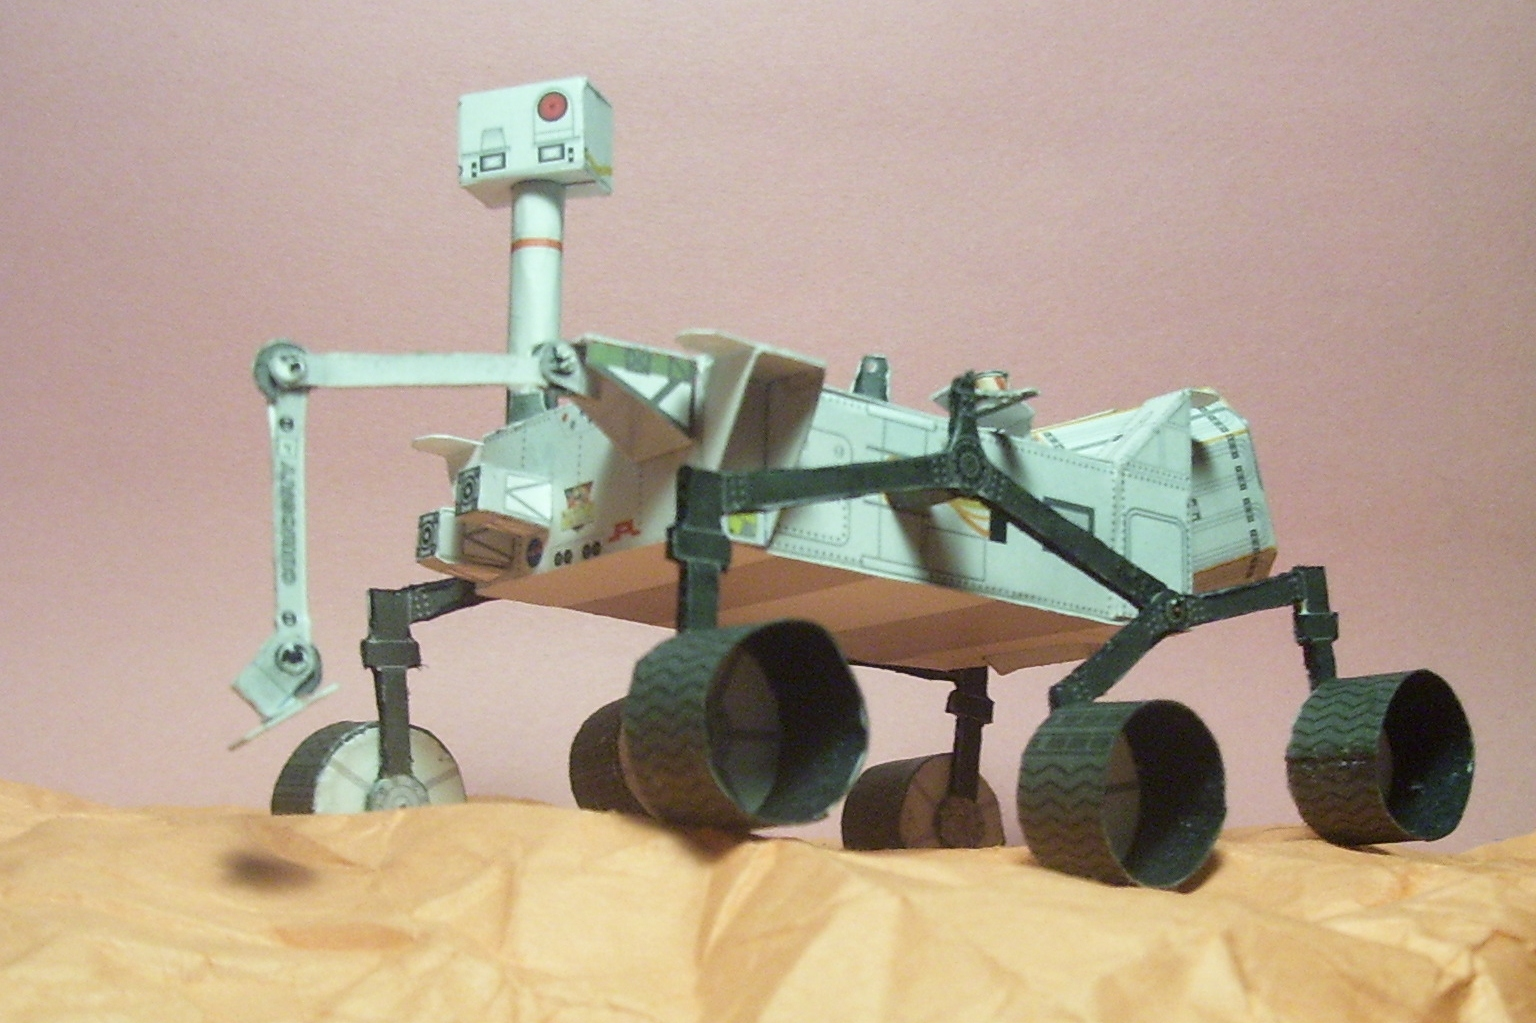 curiosity rover scale model - photo #4